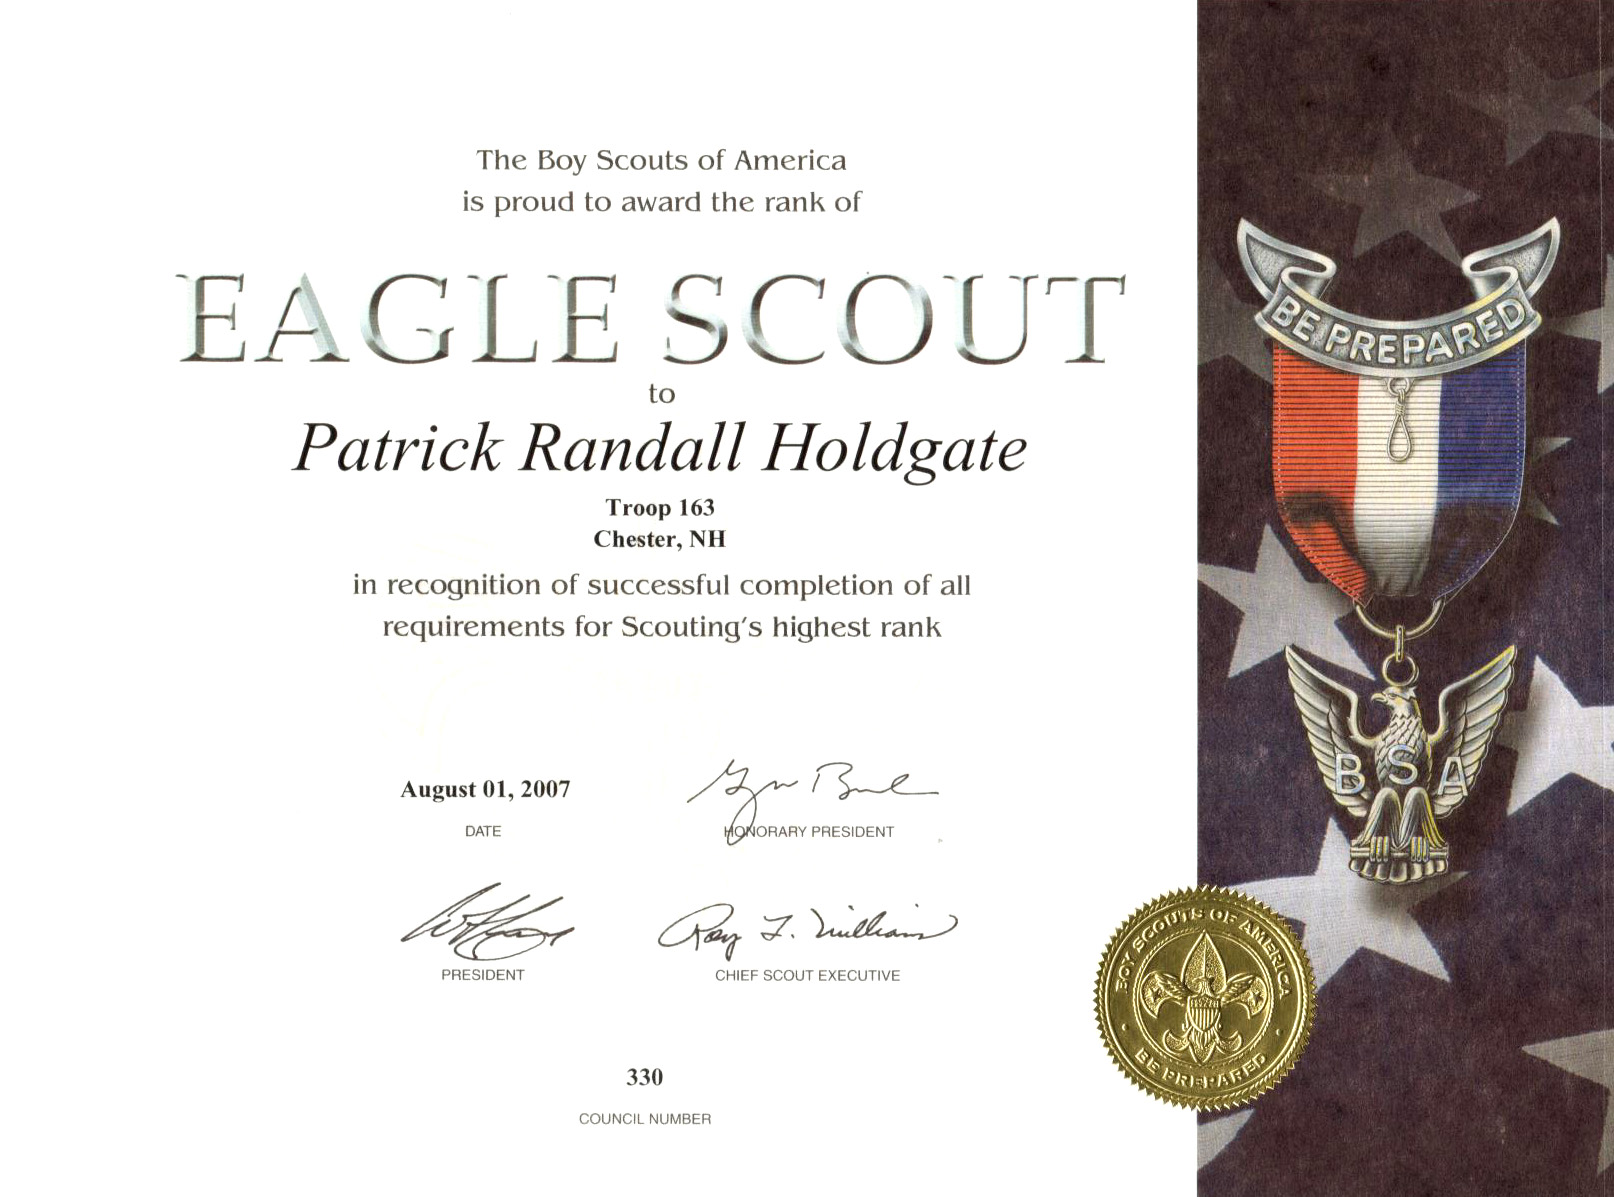 Eagle scout award certificate template pictures to pin on for Eagle scout certificate template